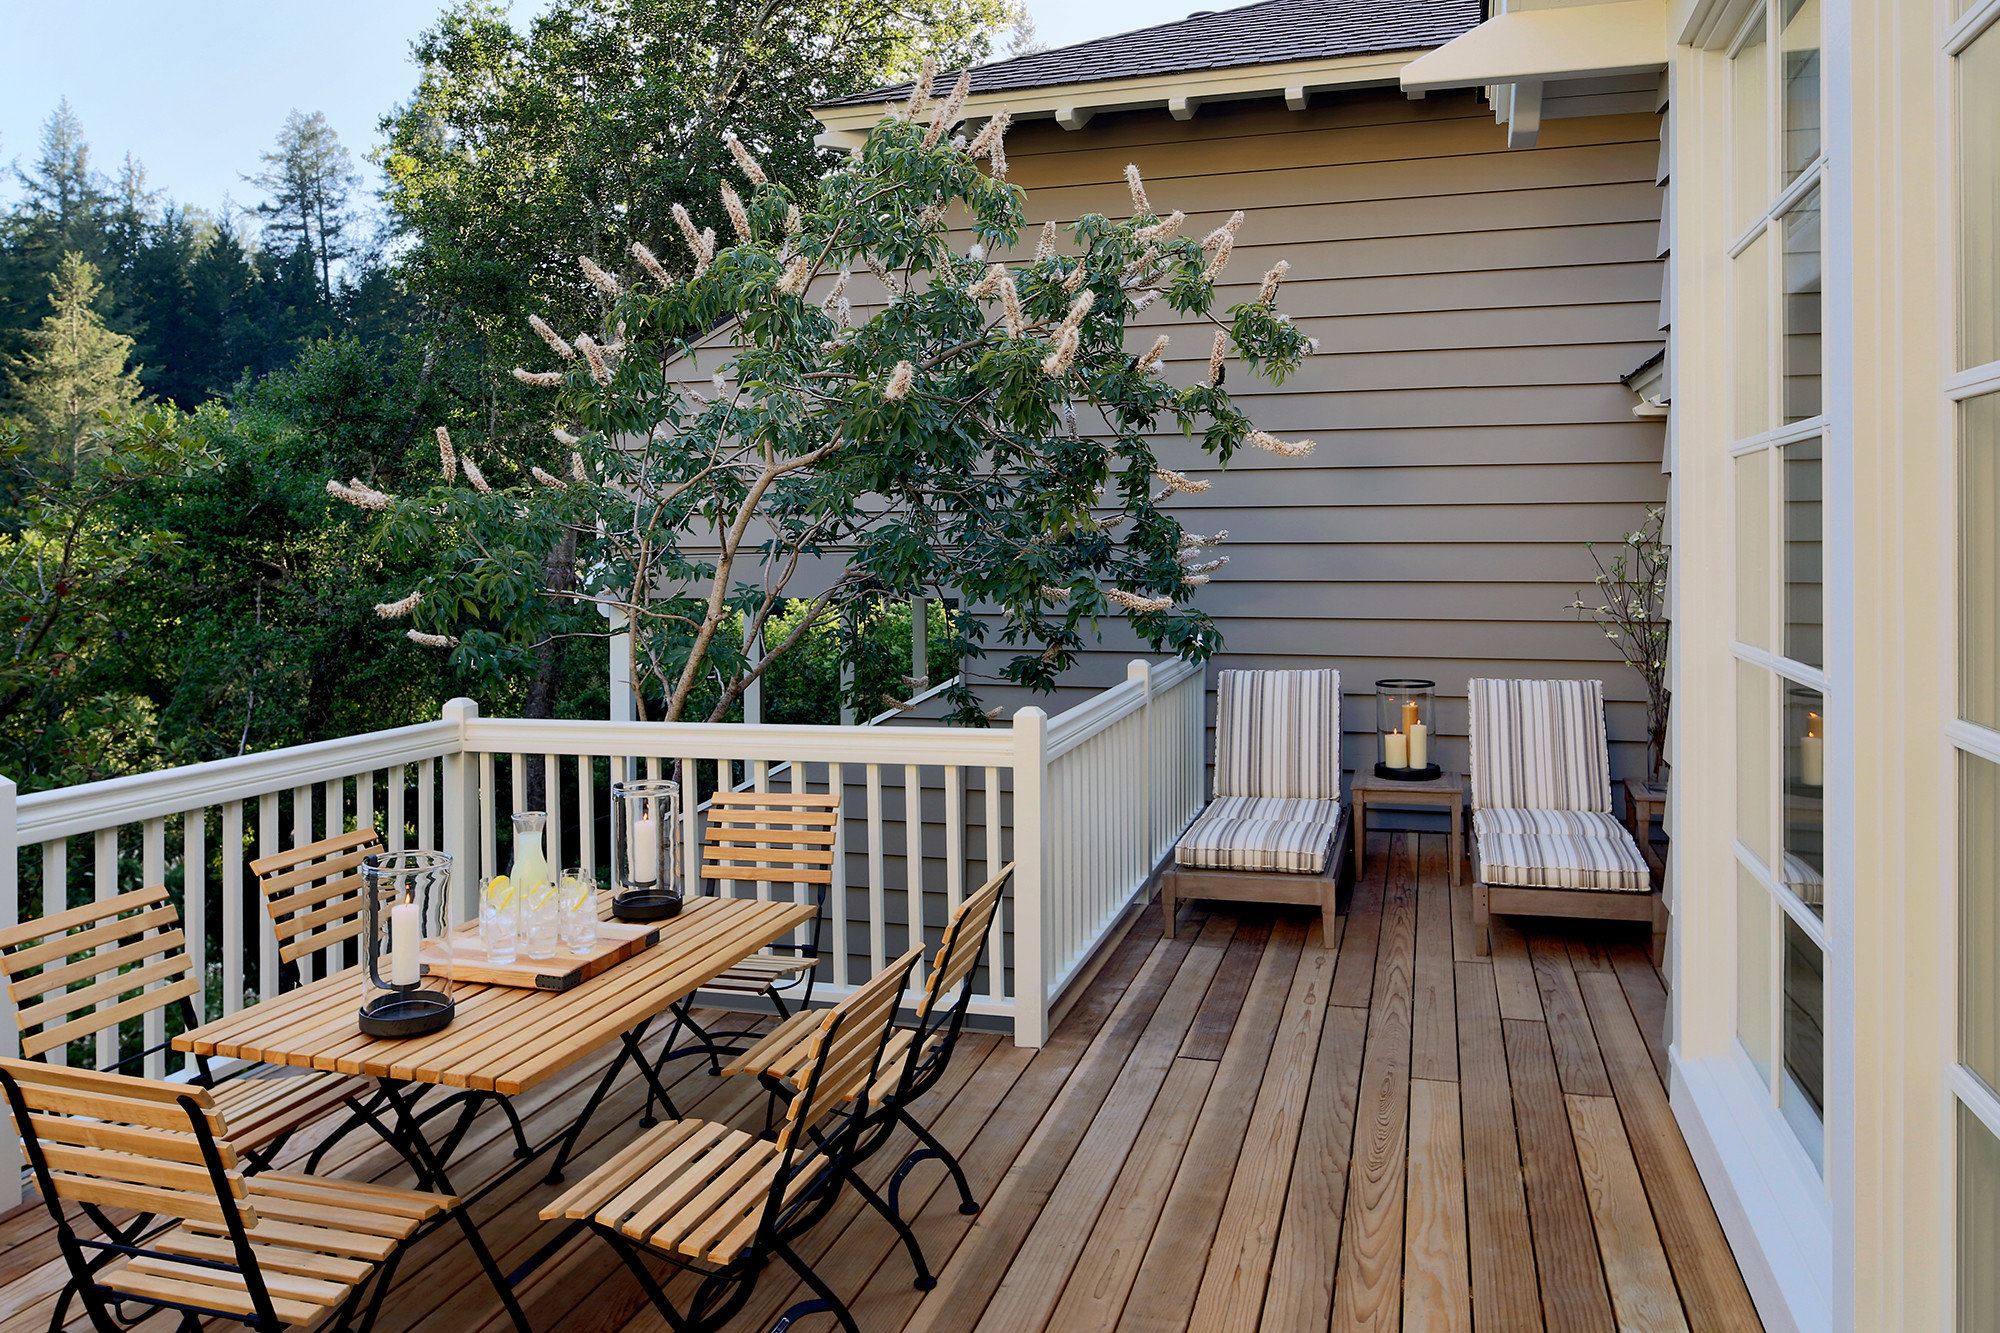 tree building chair Deck property home outdoor structure porch house Balcony backyard handrail Patio siding cottage roof yard